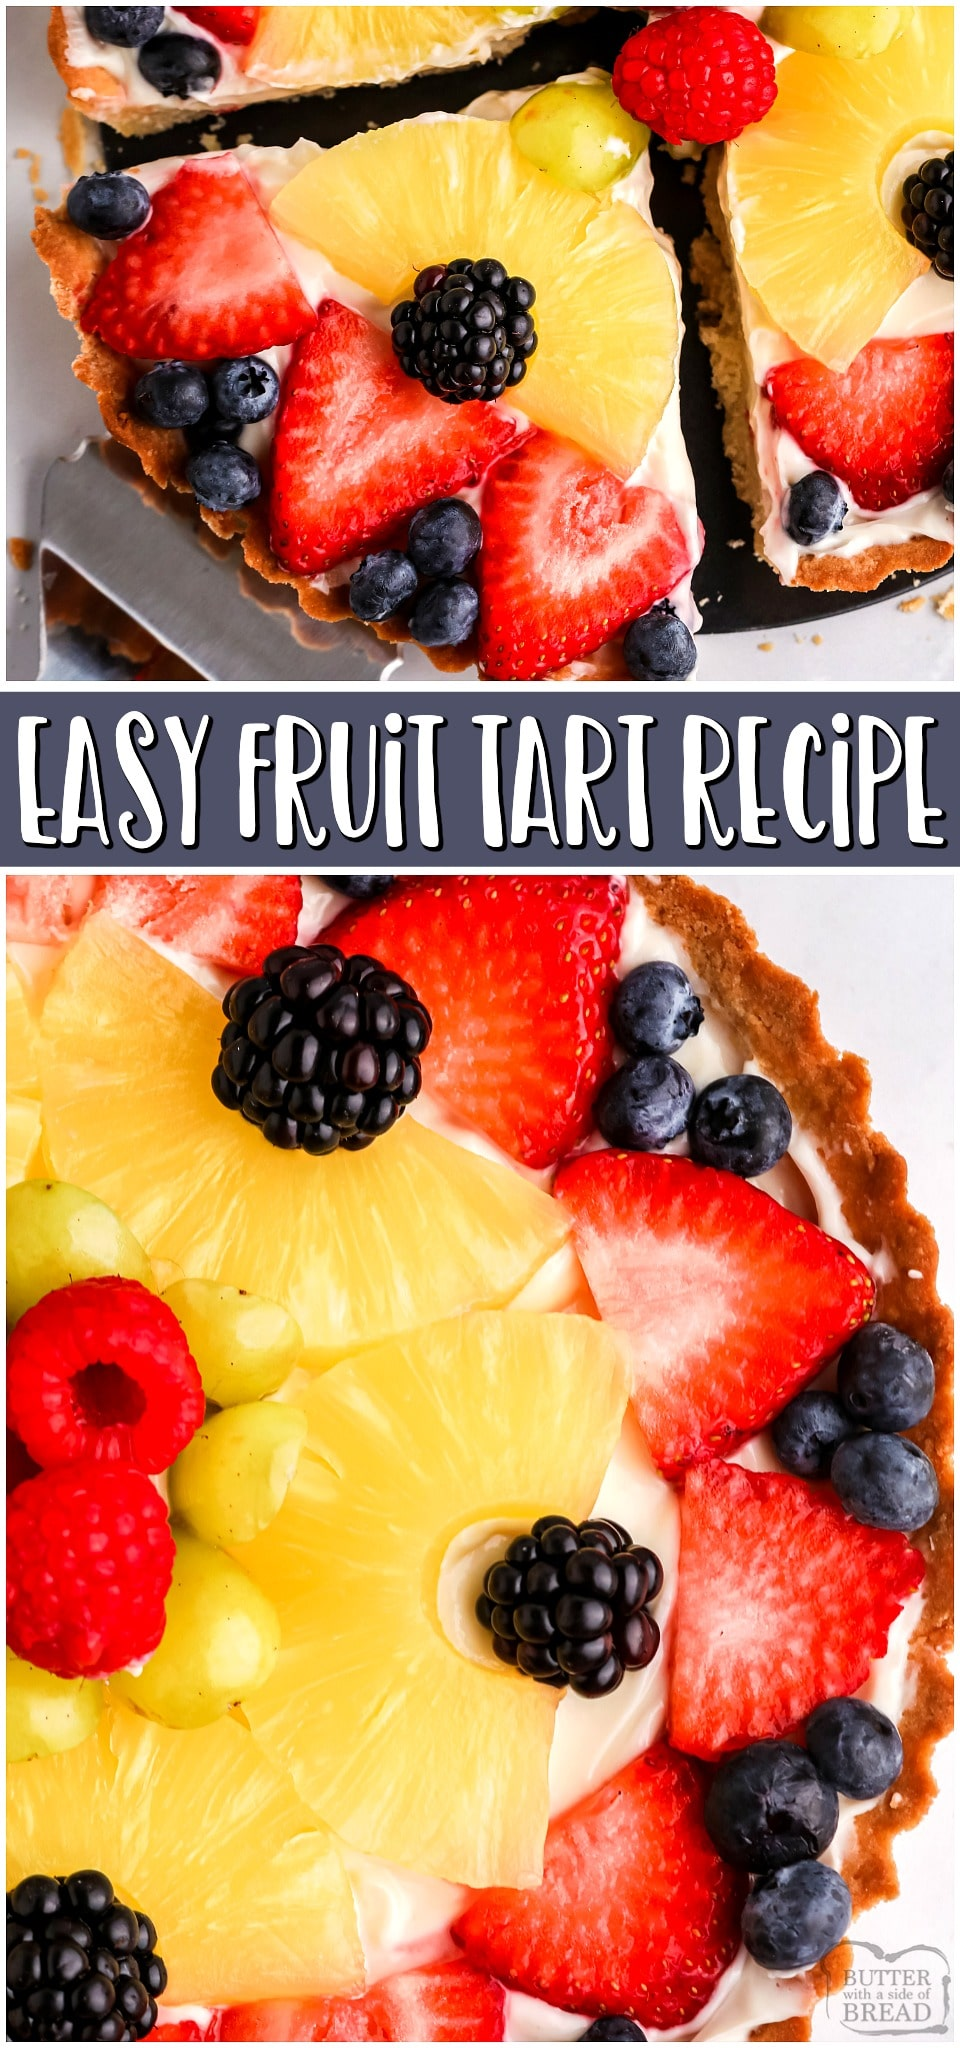 You're going to love it! Easy Fruit Tart made with a buttery crust, sweet cream cheese filling & topped with a variety of fresh fruits and berries! Fruit Tart Recipe easy enough for anyone to make! #fruit #tart #fruittart #dessert #baking #easyrecipe from BUTTER WITH A SIDE OF BREAD